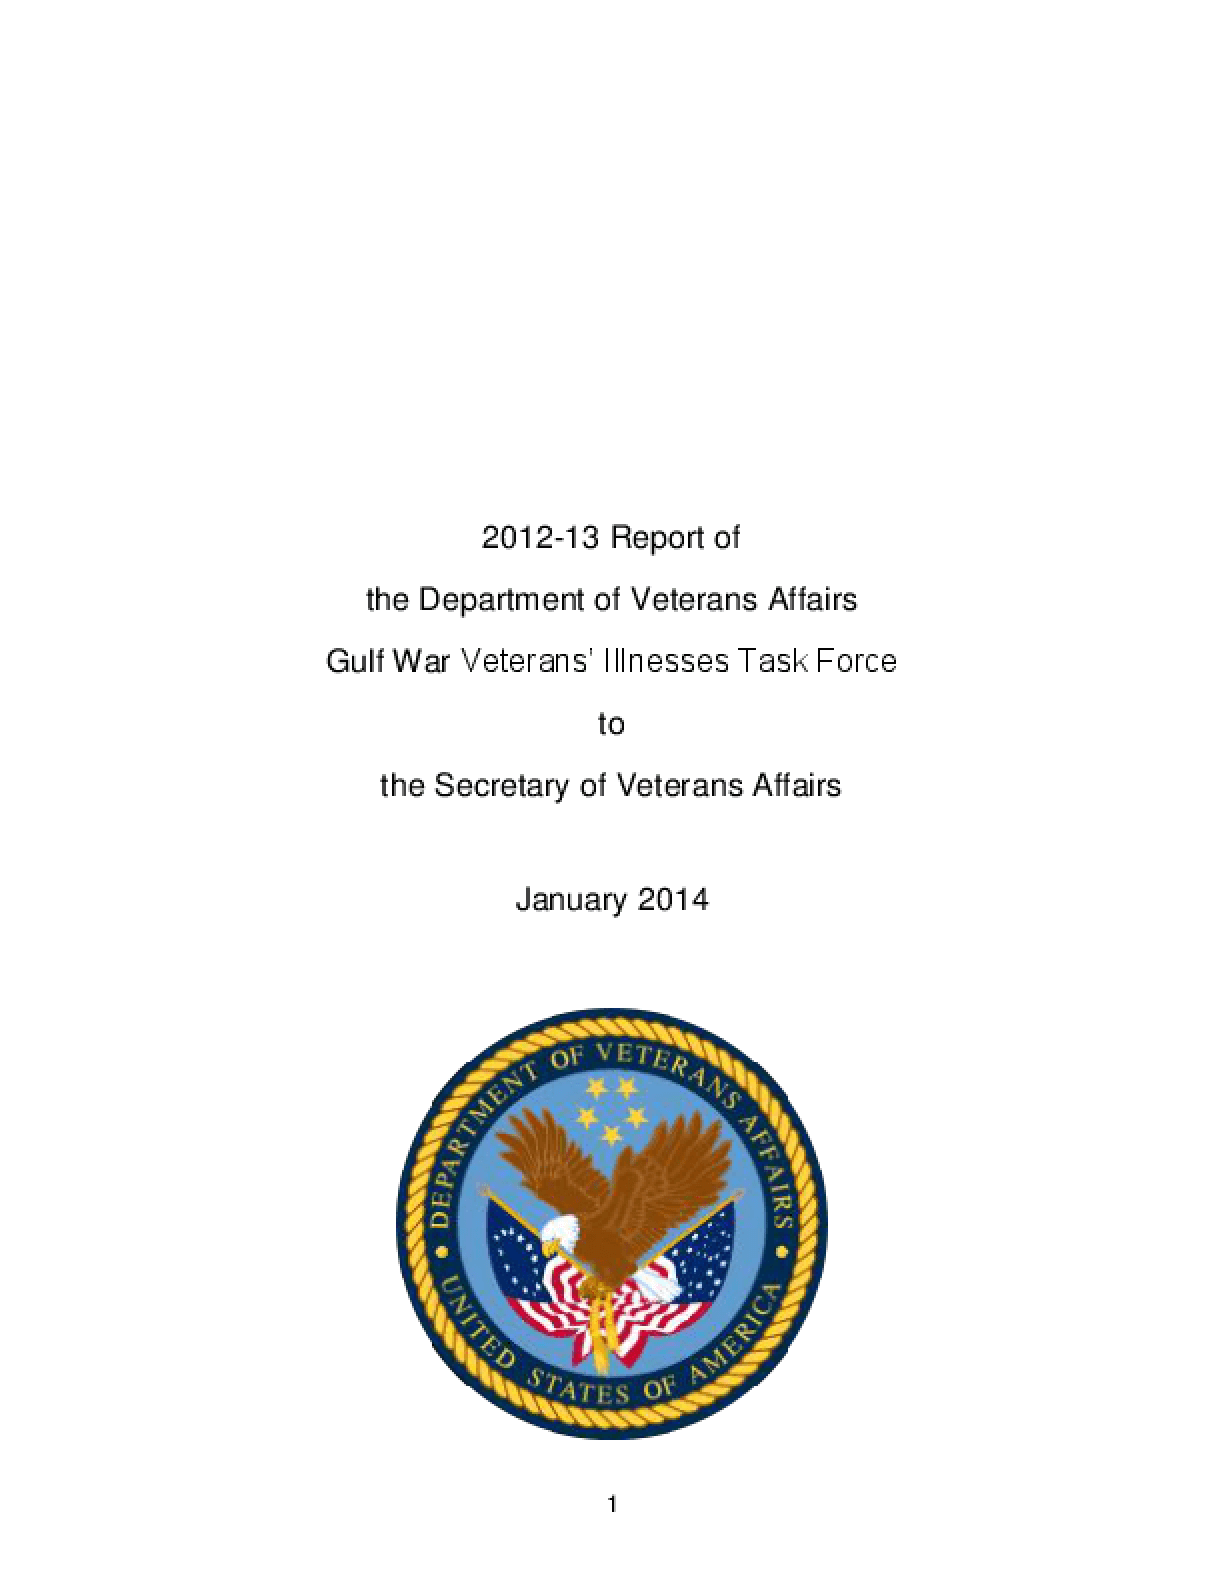 2012-13 Report of the Department of Veterans Affairs Gulf War Veterans? Illnesses Task Force to the Secretary of Veterans Affairs